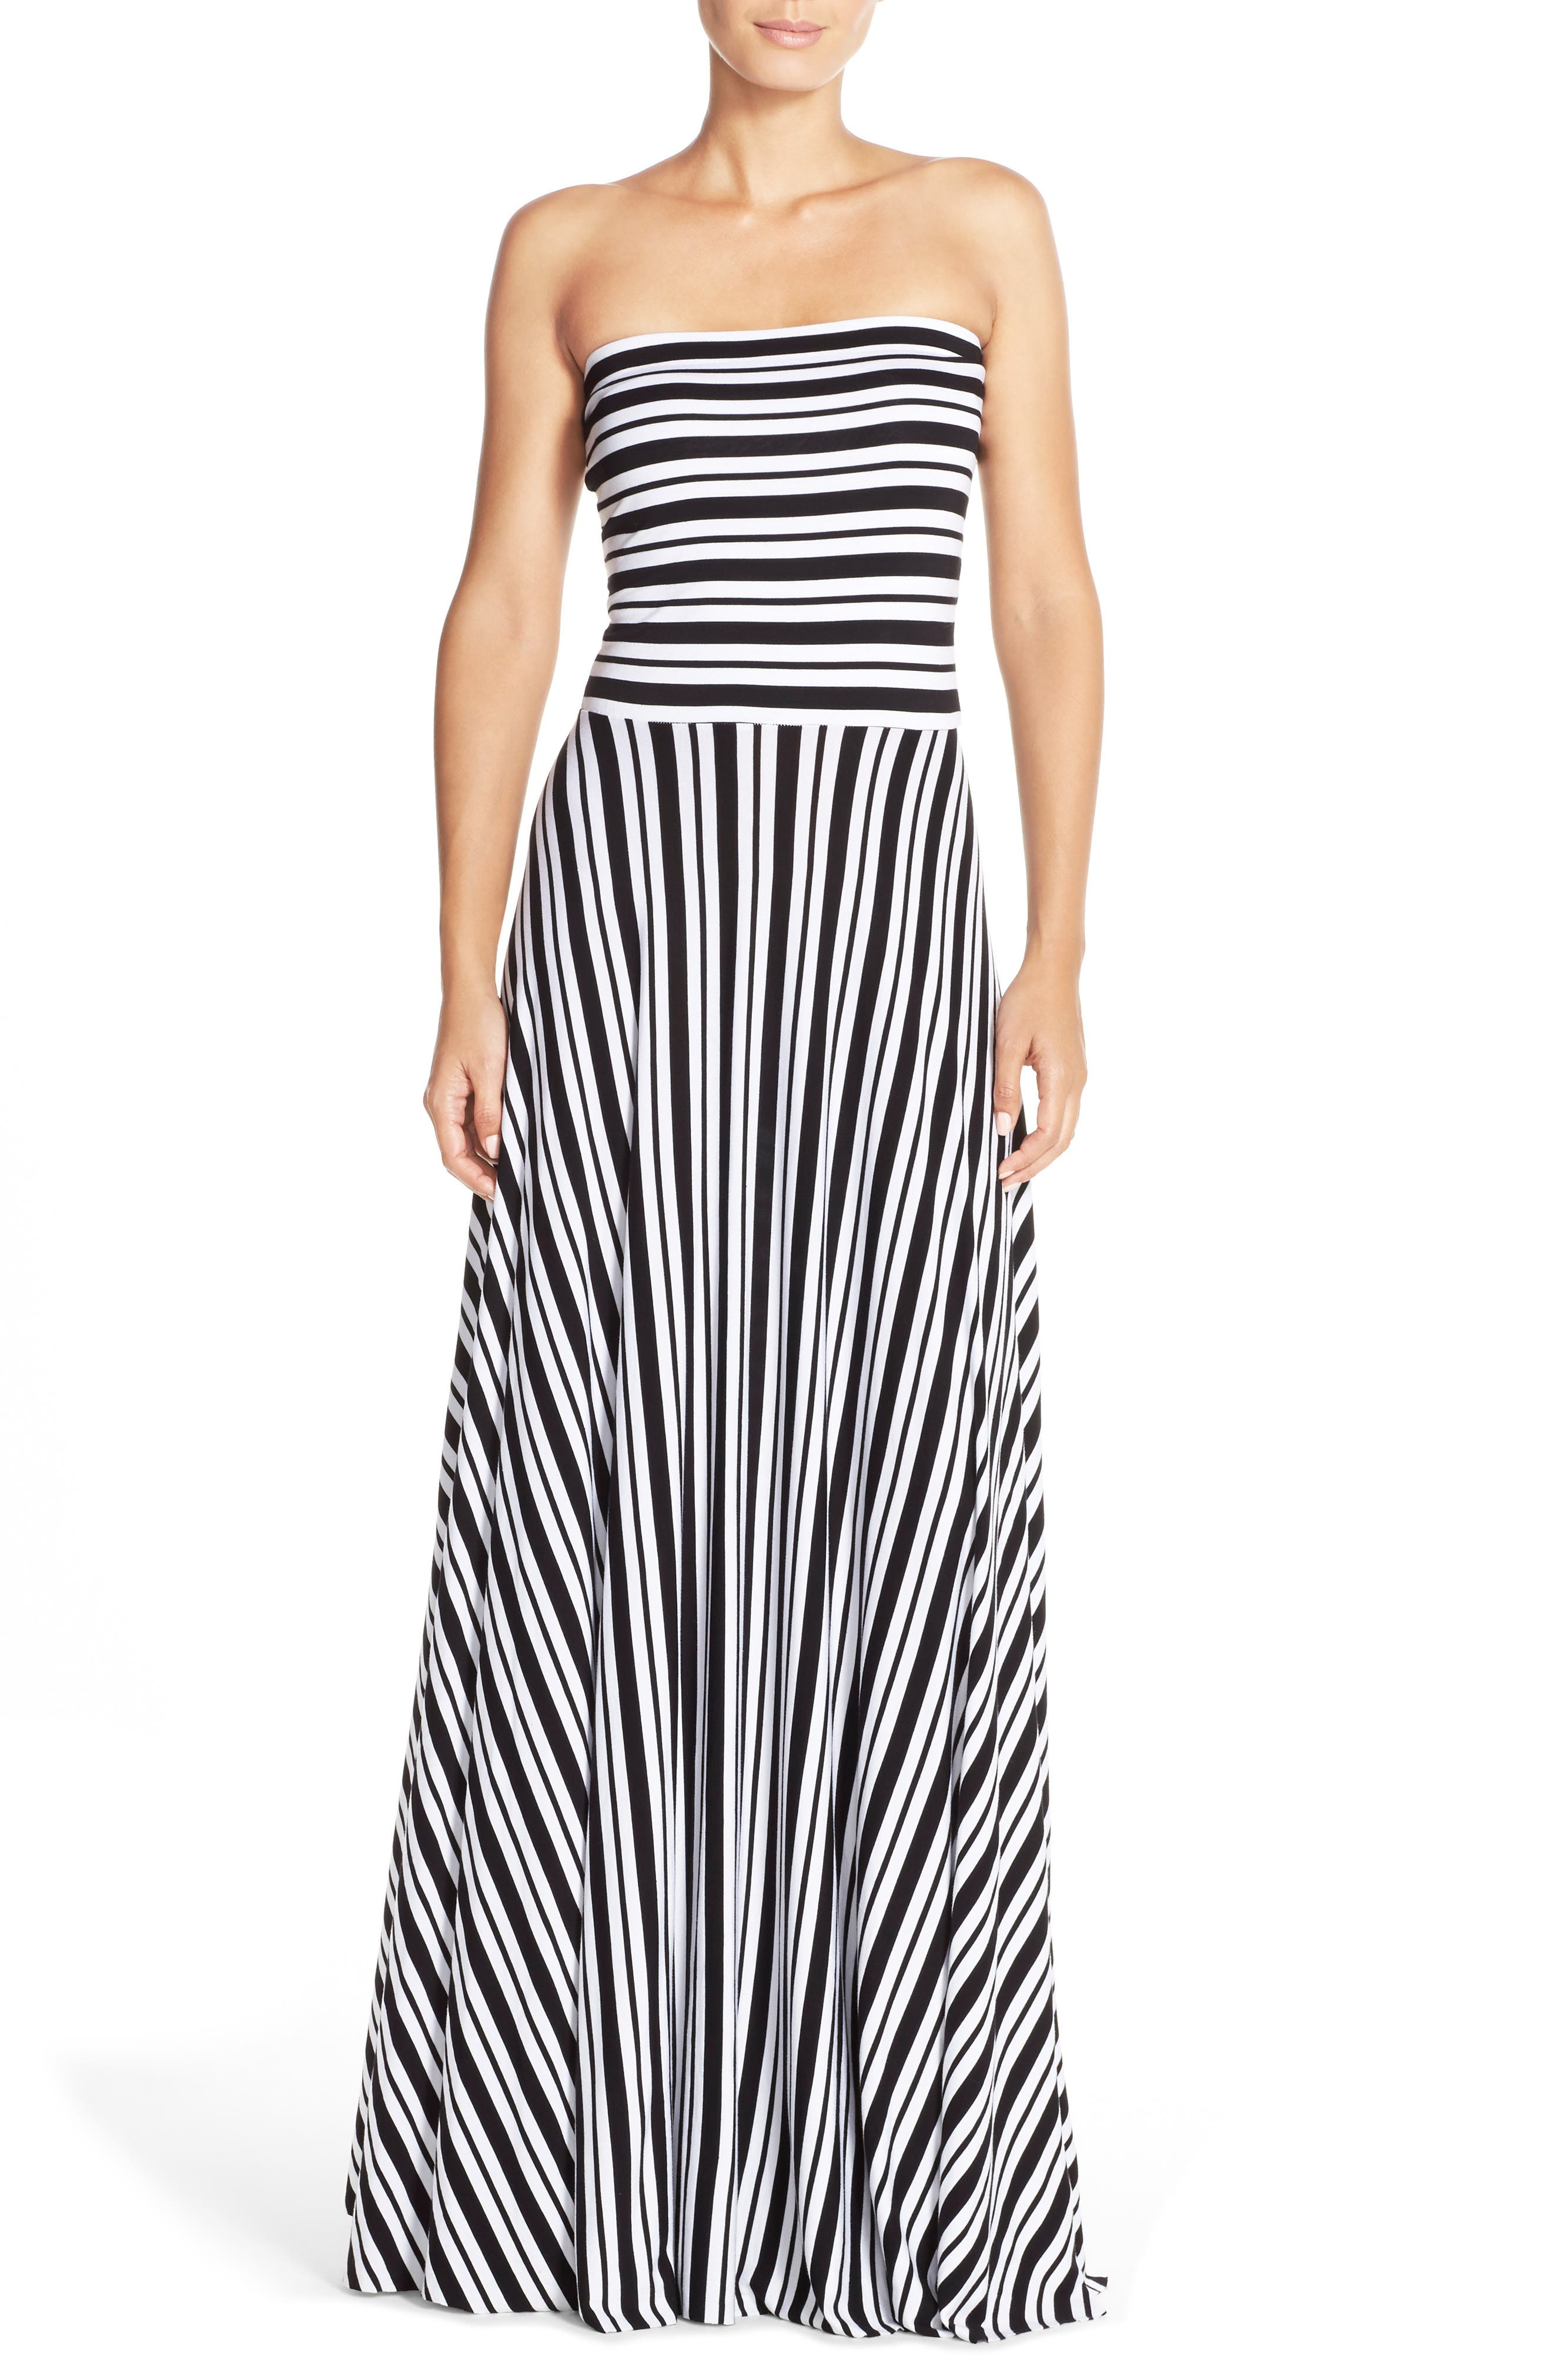 FELICITY & COCO, Stripe Strapless Maxi Dress, Main thumbnail 1, color, 001